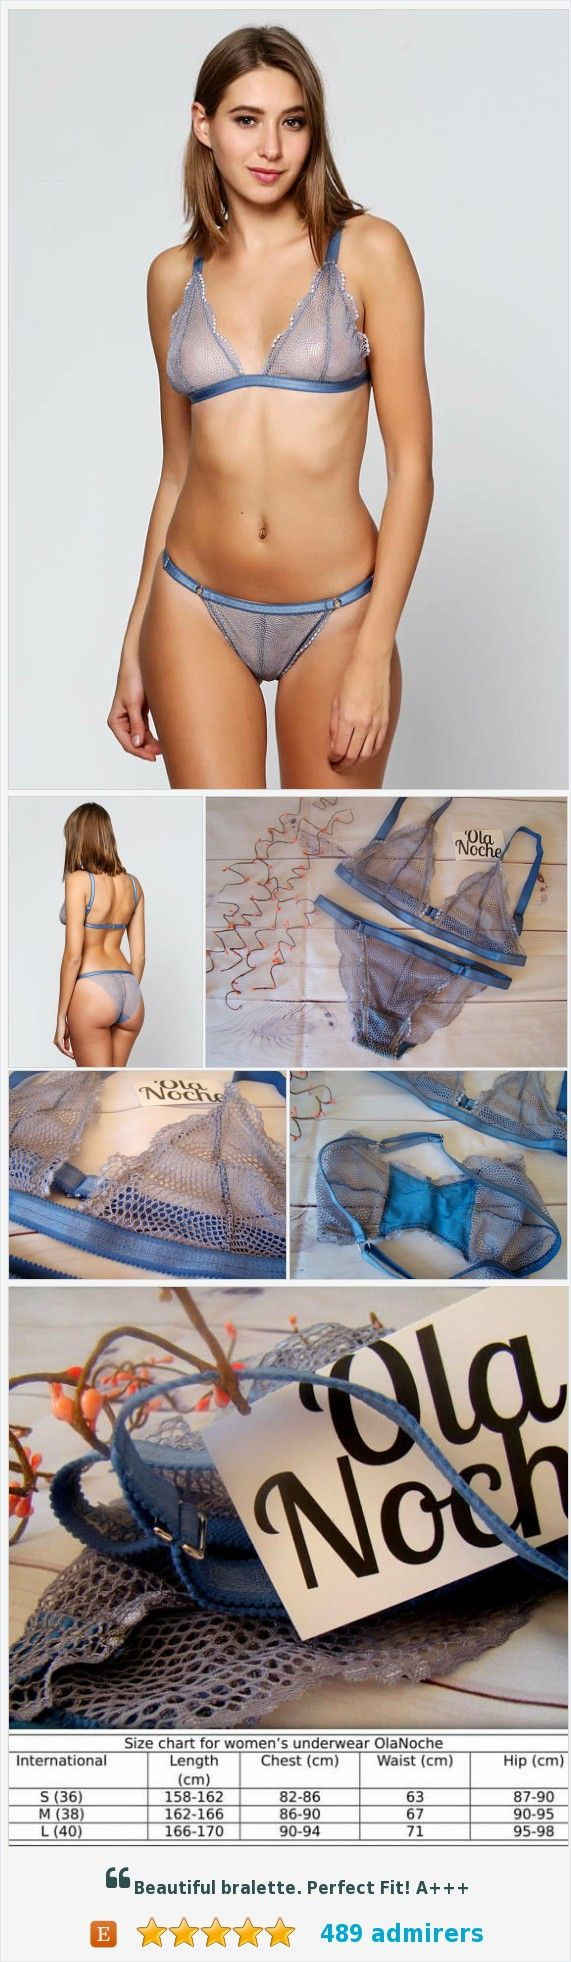 #Florallacebra #Sheernudemesh #Meshlingerie #Gray #OlaNoche https://www.etsy.com/OlaNoche/listing/547526762/floral-lace-bra-panty-set-sheer-nude?ref=shop_home_active_15